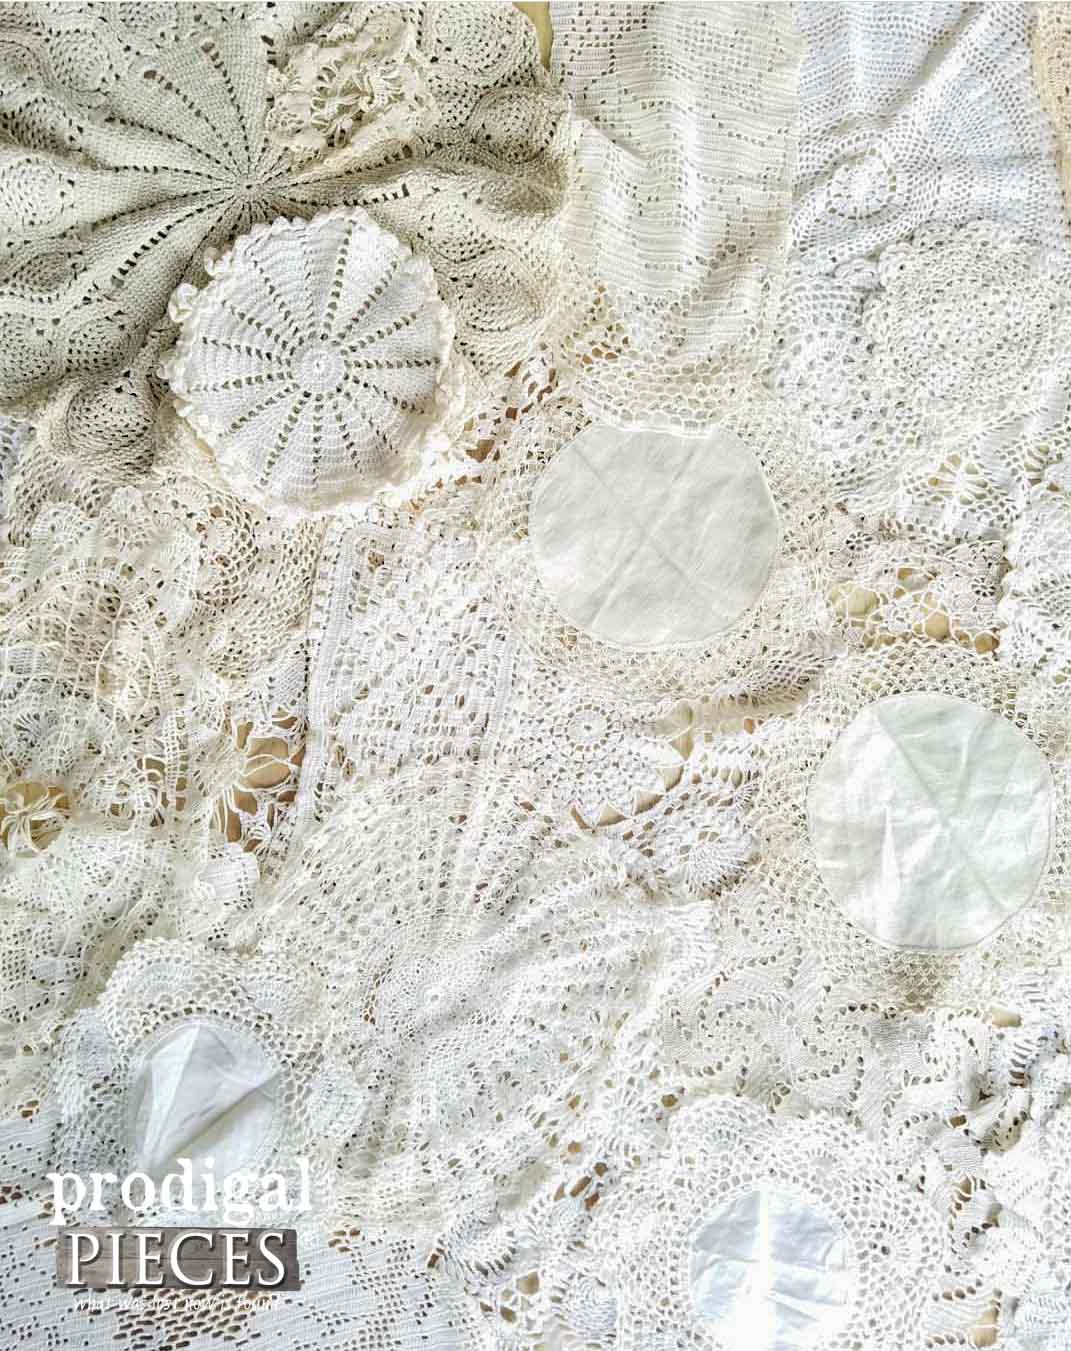 Collection of Vintage Doilies by Prodigal Pieces | prodigalpieces.com